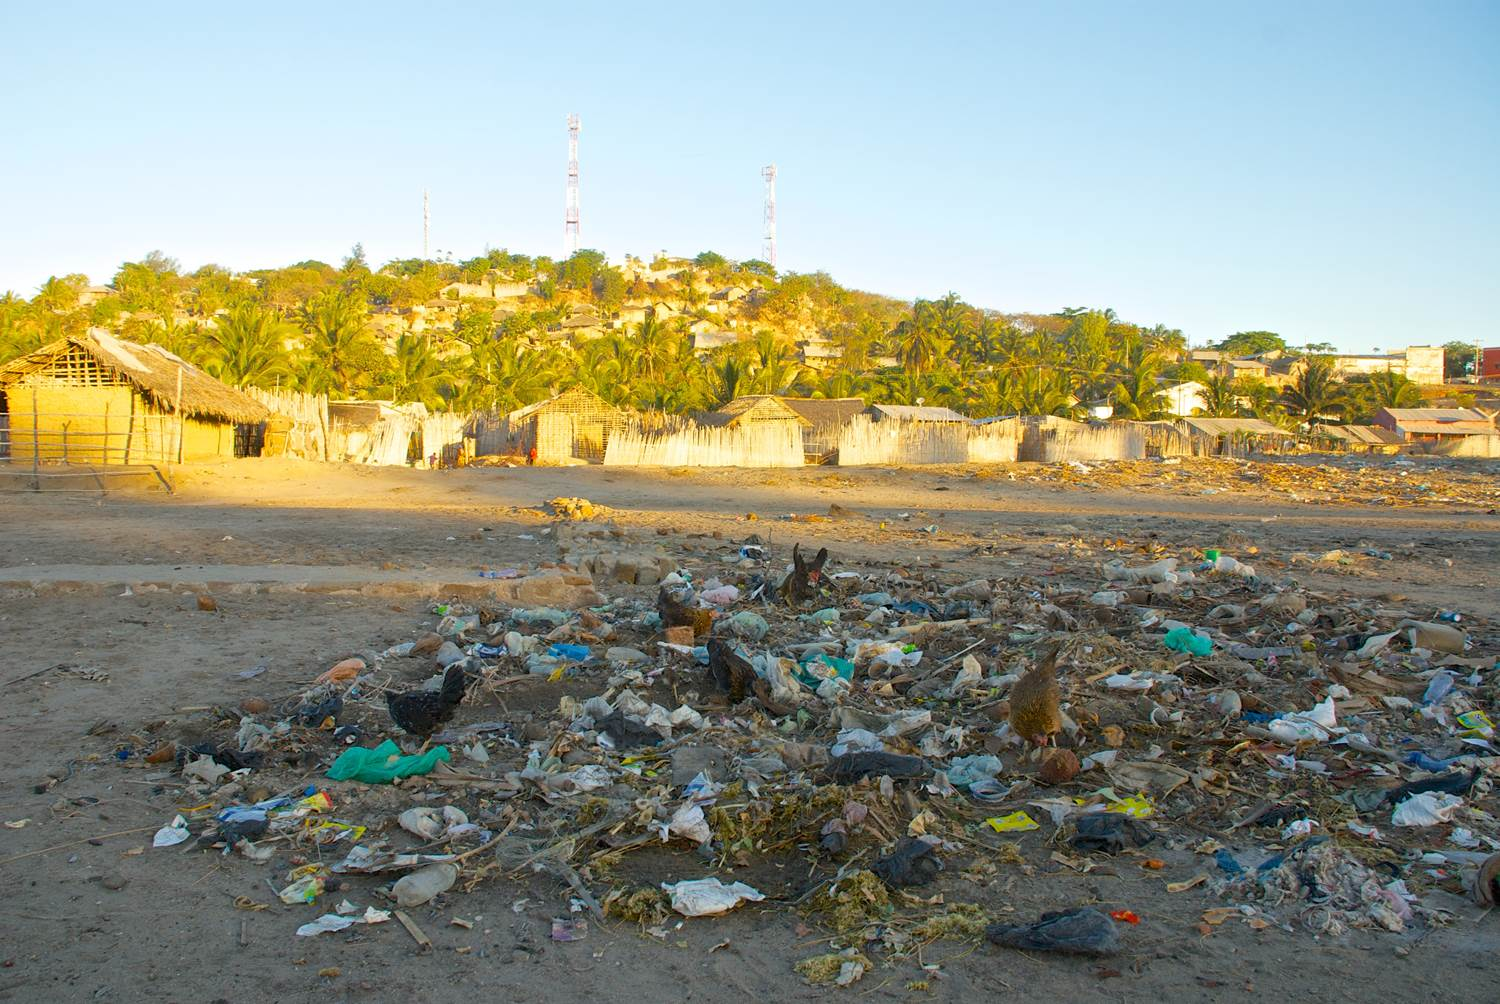 Litter in Pemba, Mozambique